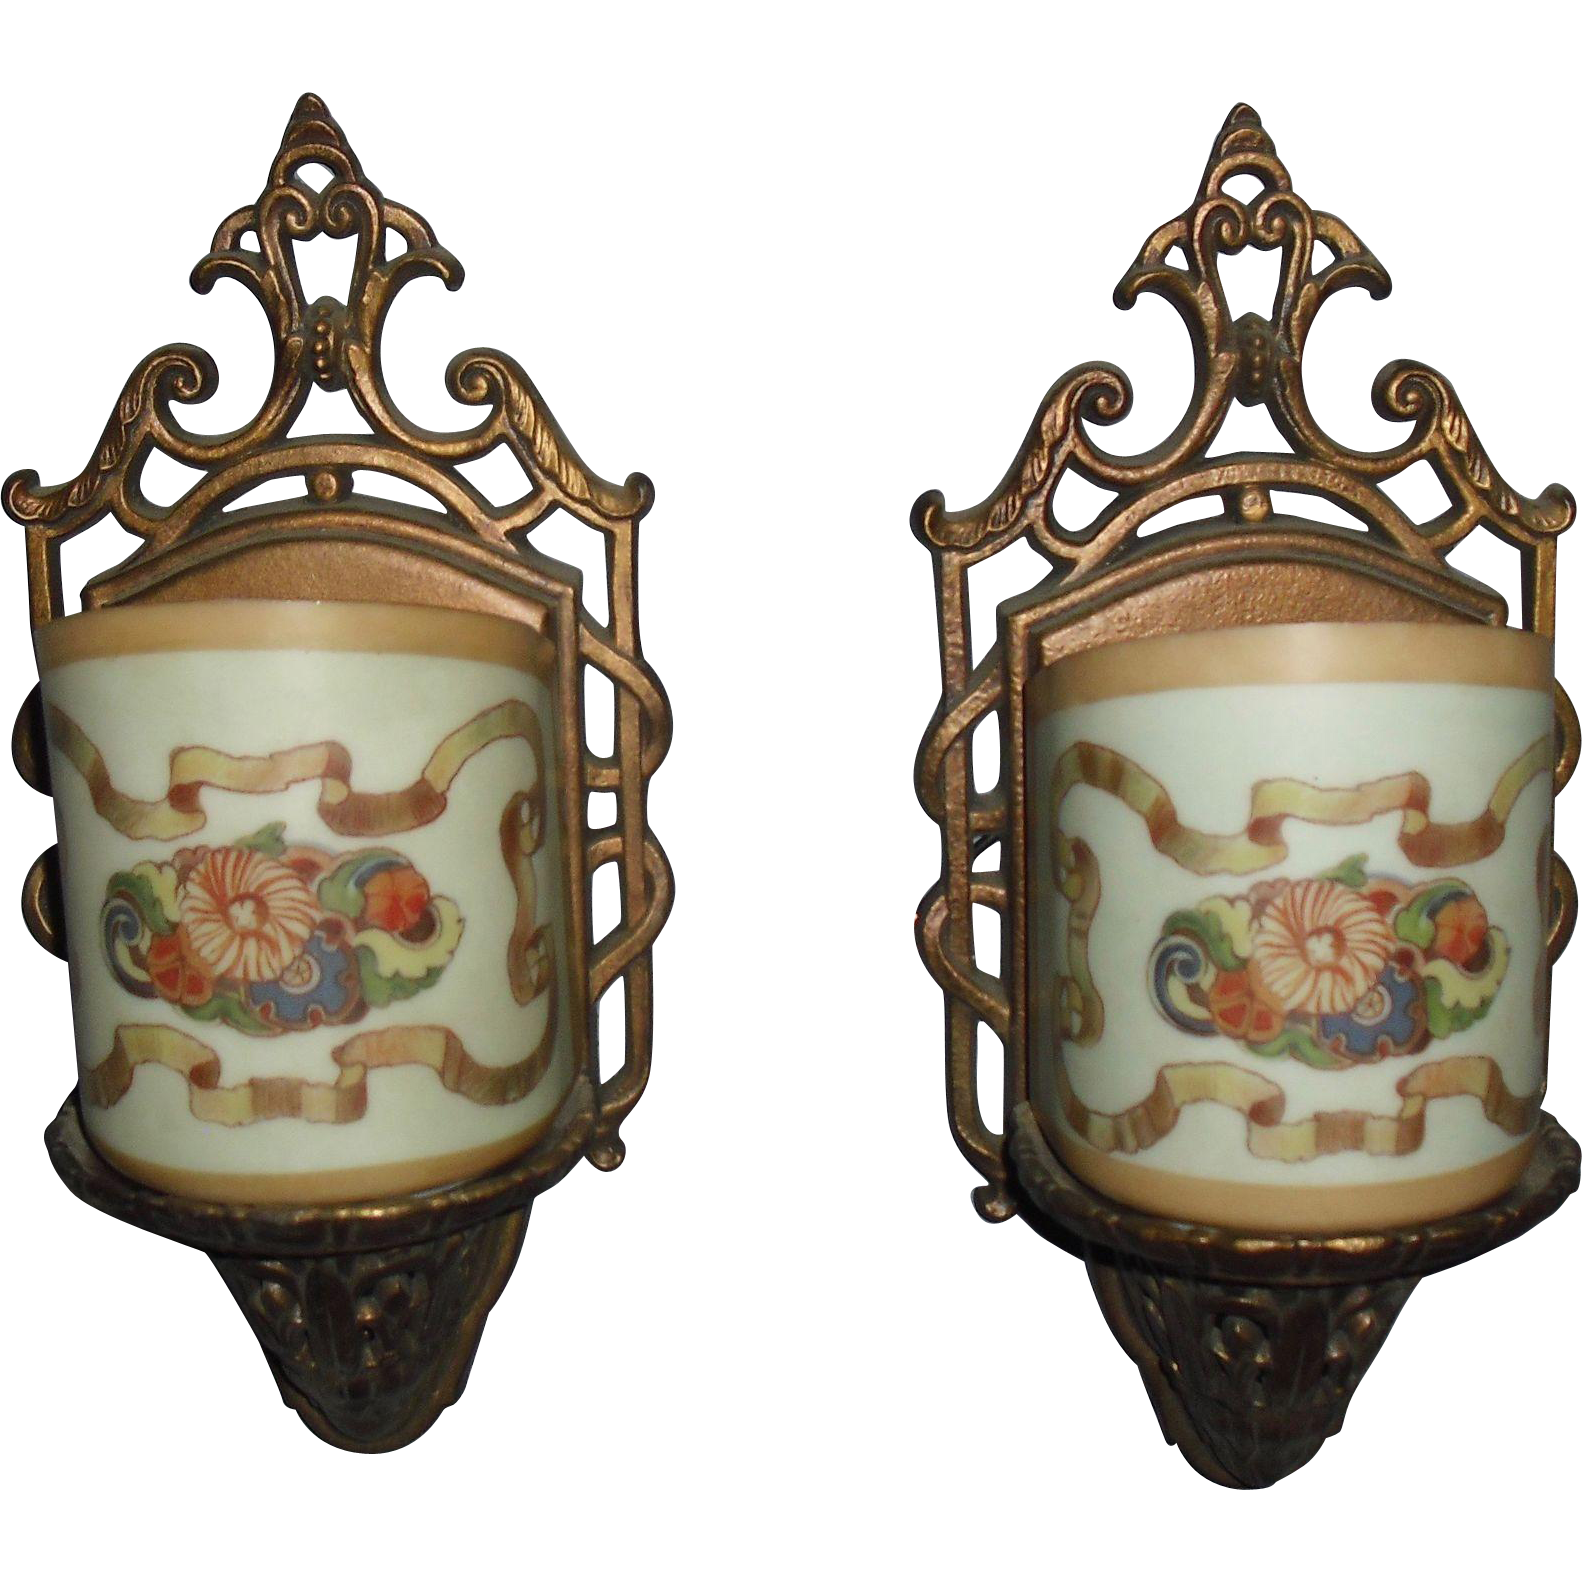 Art Deco Lightolier Wall Sconces with Decorated Glass Shades